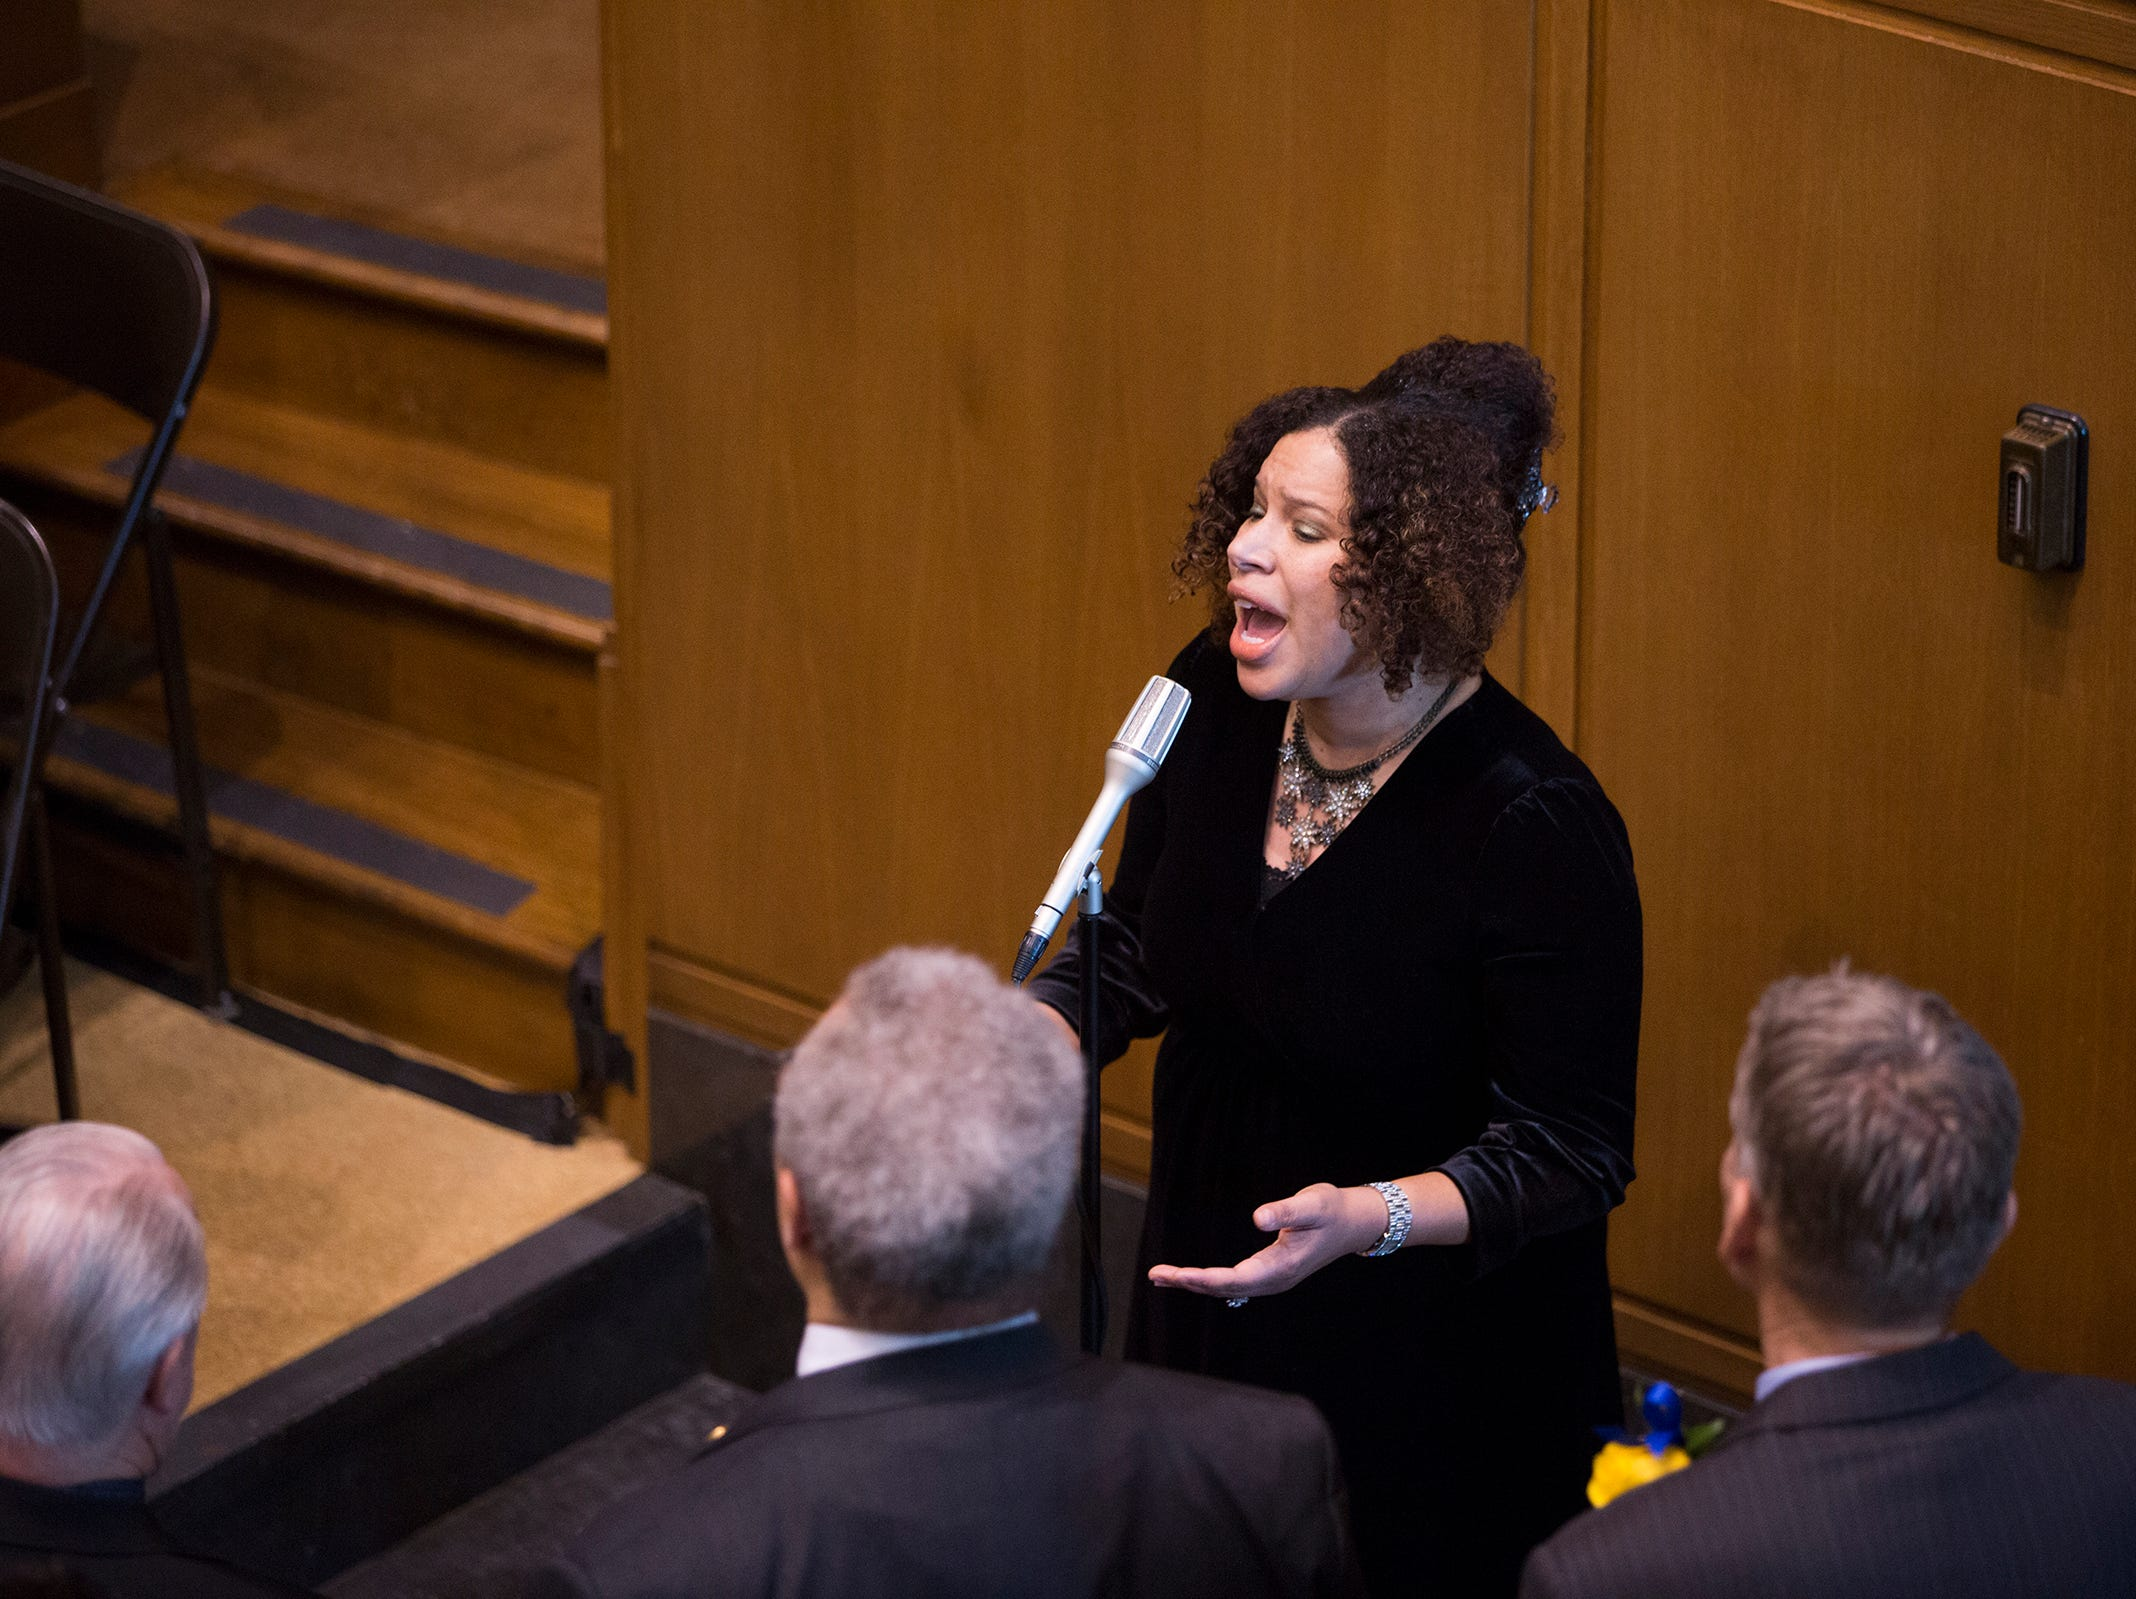 Leah Harrison of The Brown Sisters sings Lift Every Voice and Sing before Governor Kate Brown addresses the state legislature at her inauguration at the Oregon State Capitol on Jan. 14, 2019.